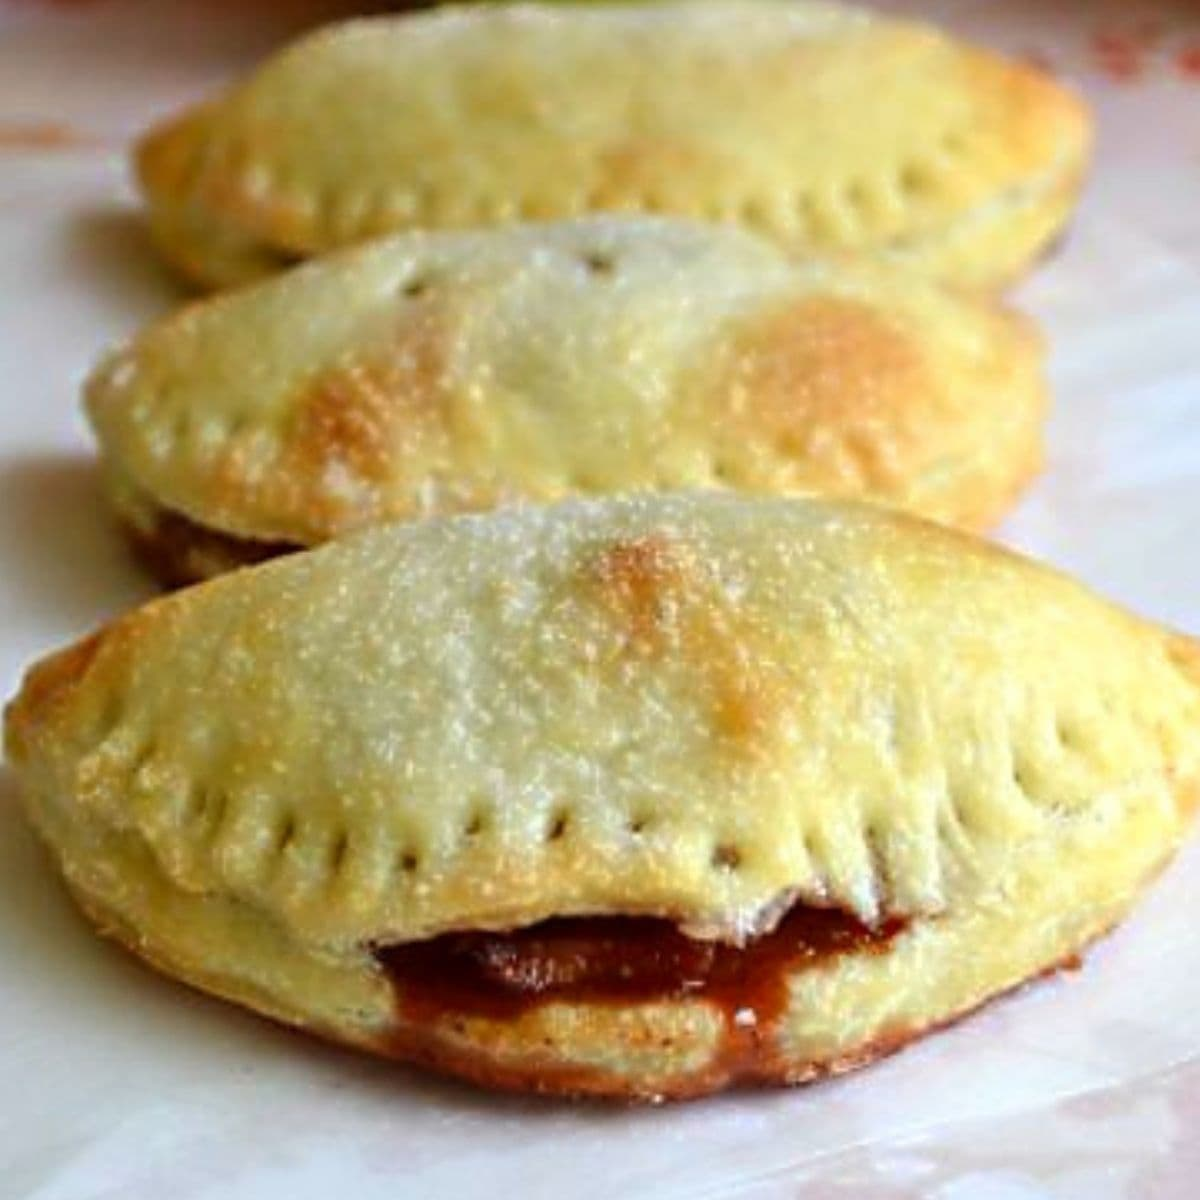 Three cranberry apple turnovers in a row.